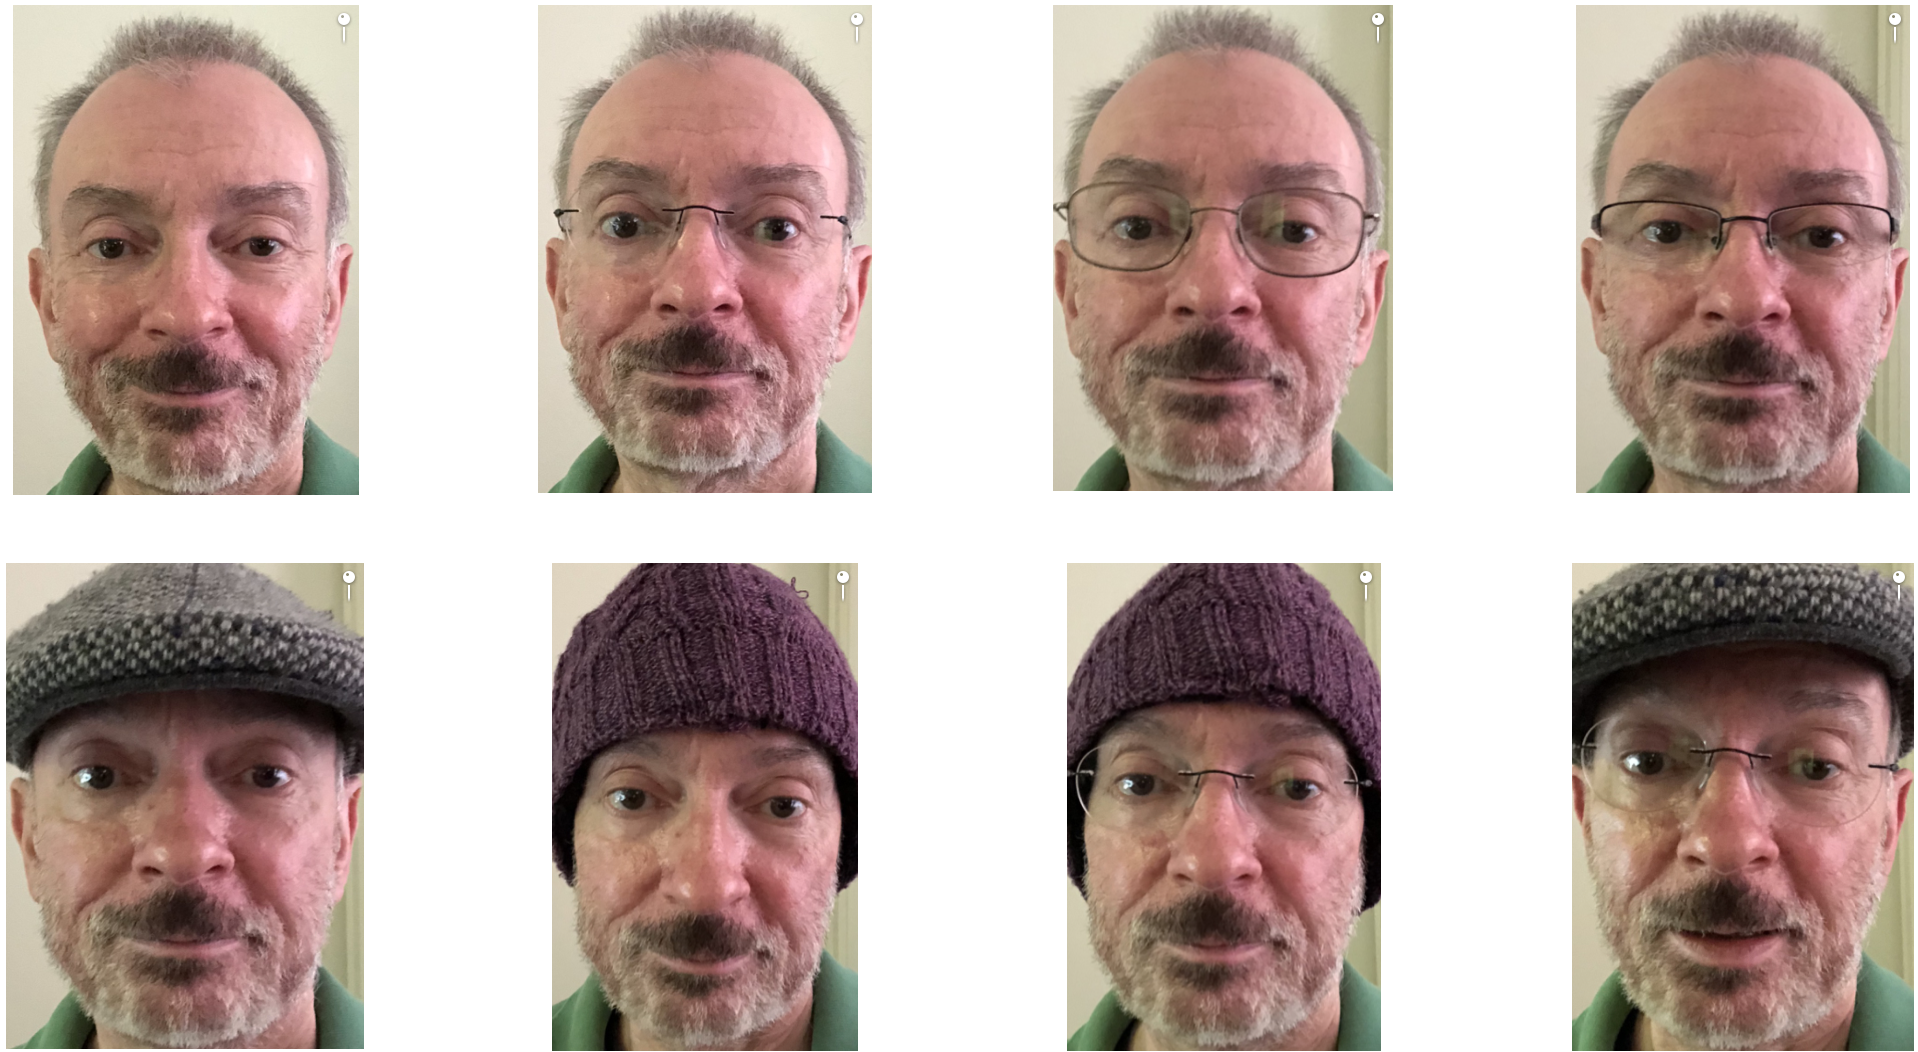 Face ID recognizes any of these variations of my face with and without glasses and caps.